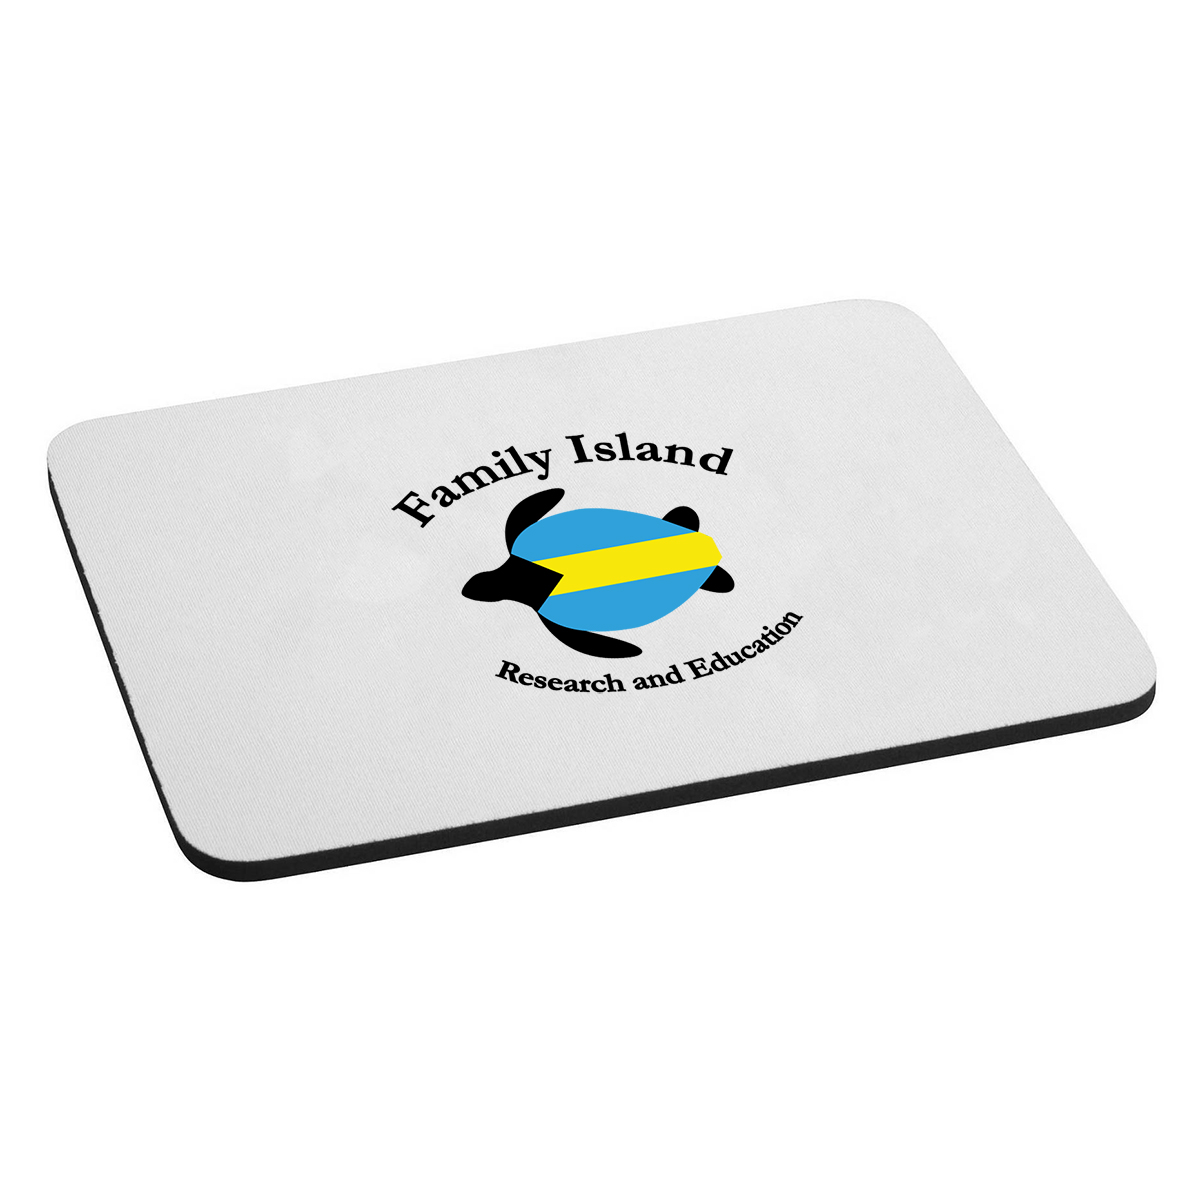 Bahamas Sea Turtle Research - Mouse Pad (BSTR404)